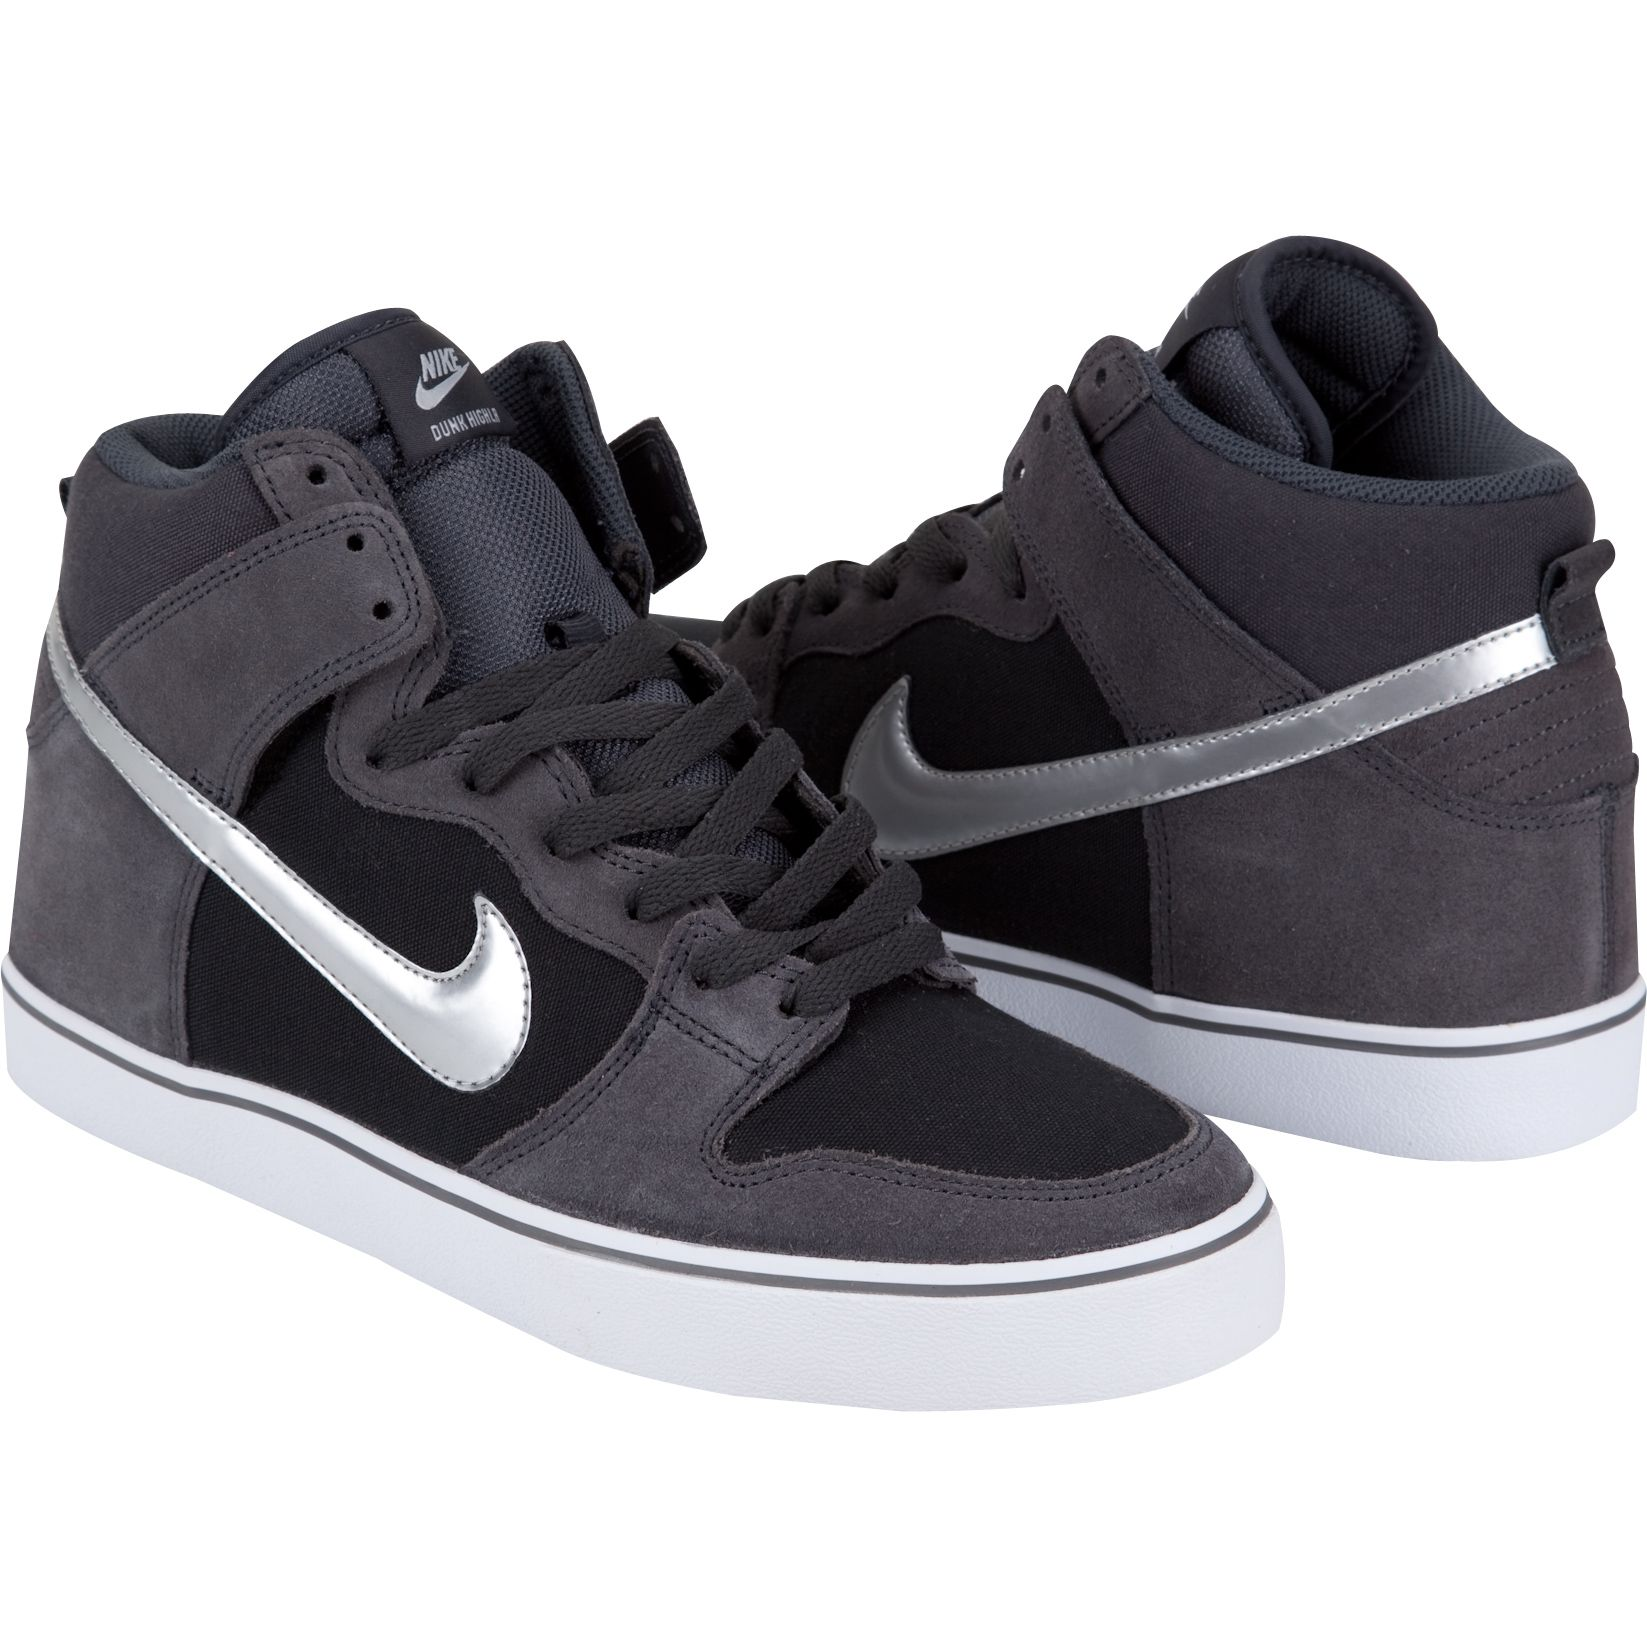 best wholesaler hot products release date: NIKE Dunk High Leather Mens Shoes 197275111   Sneakers ...